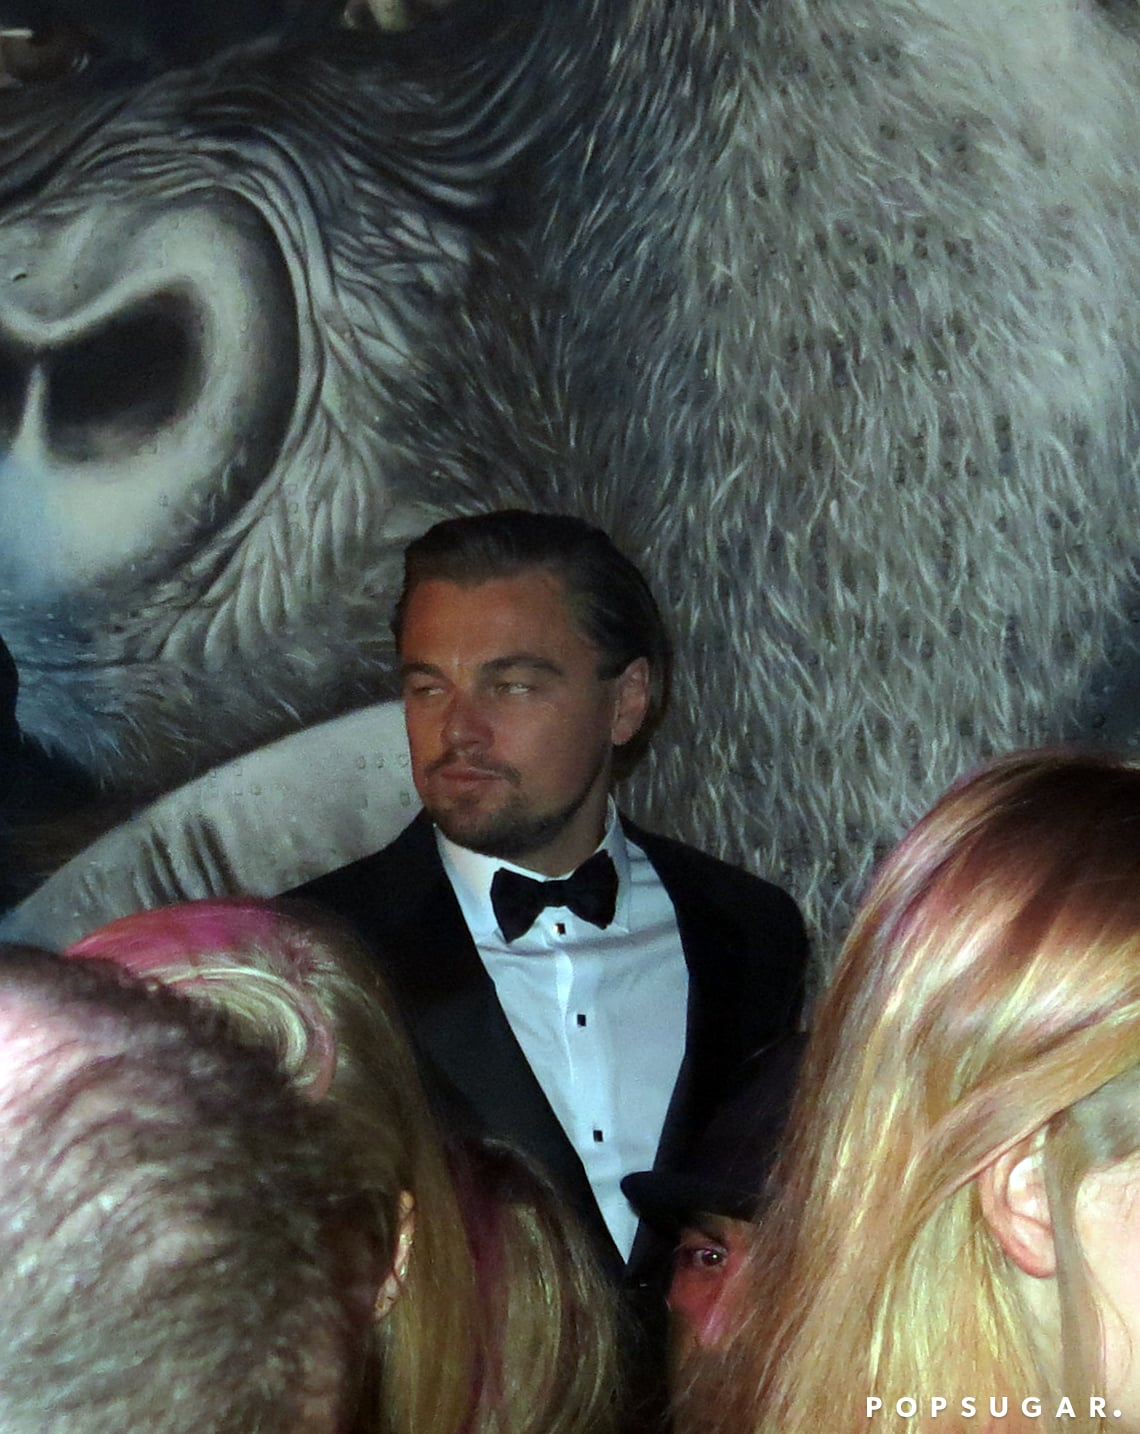 There's Leo!